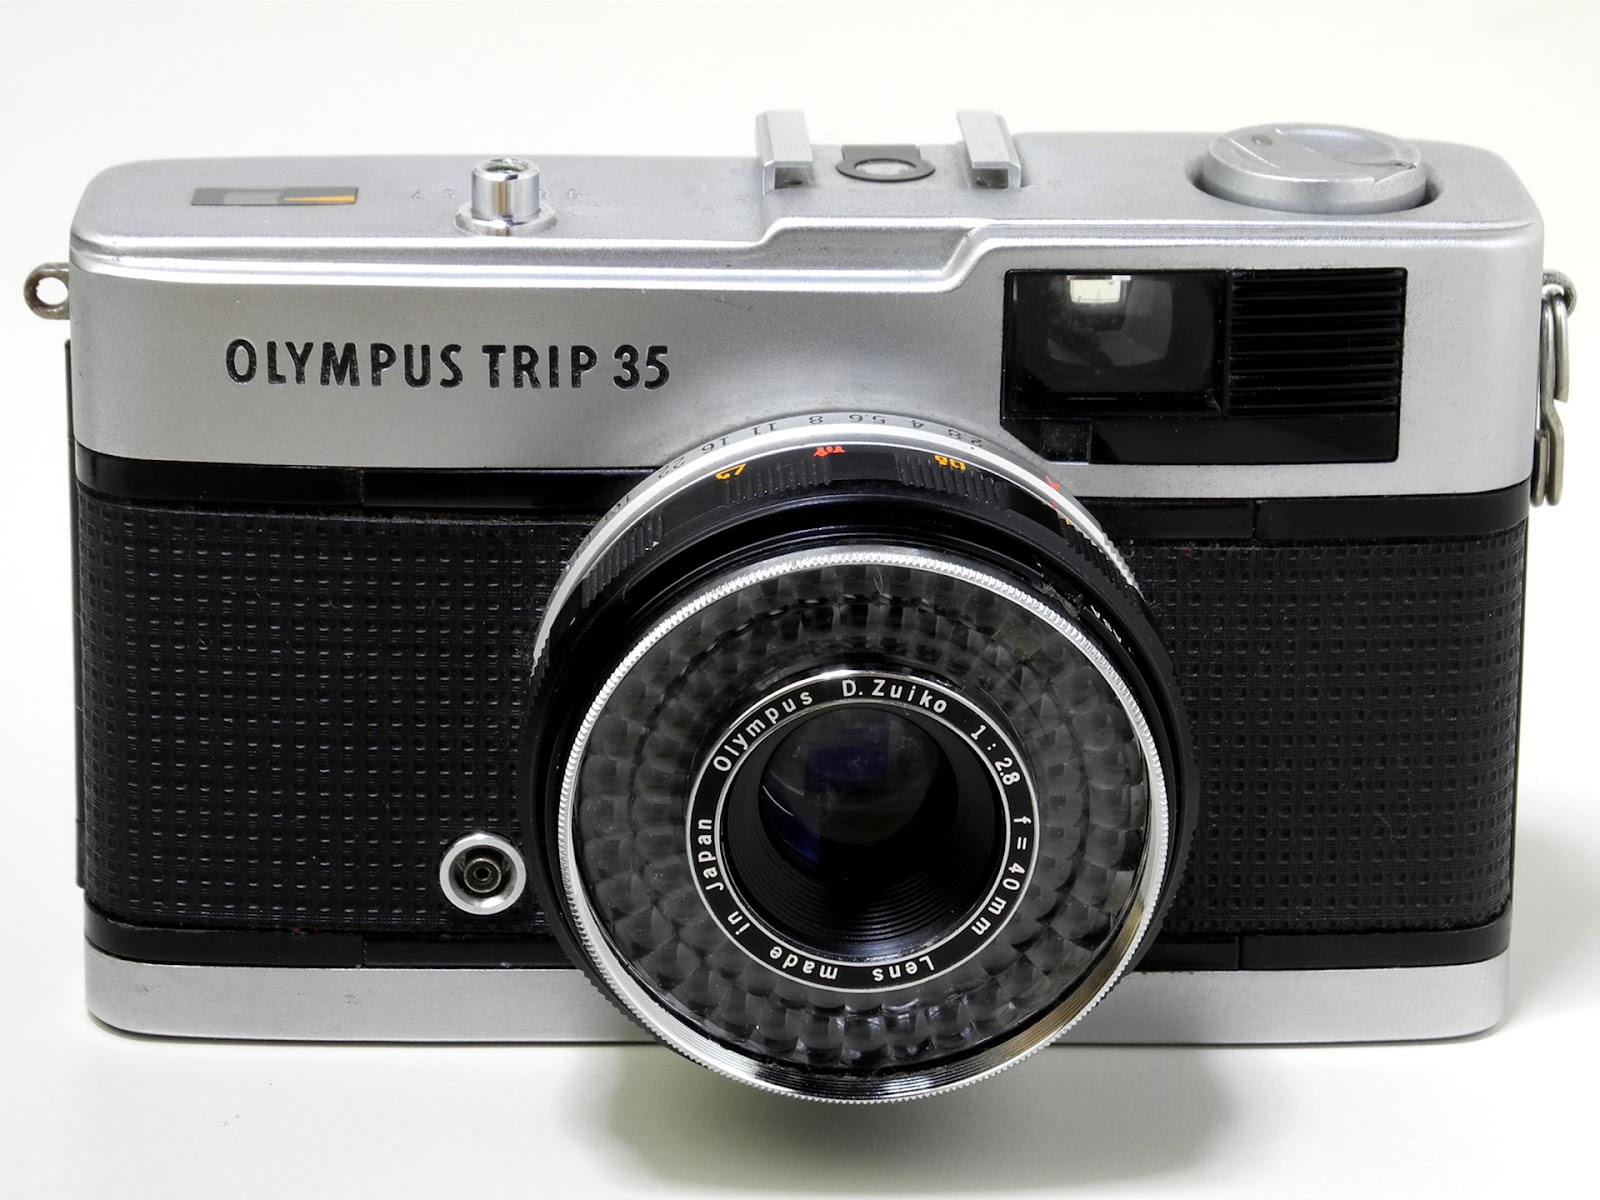 A photo of the Olympus Trip 35 film camera